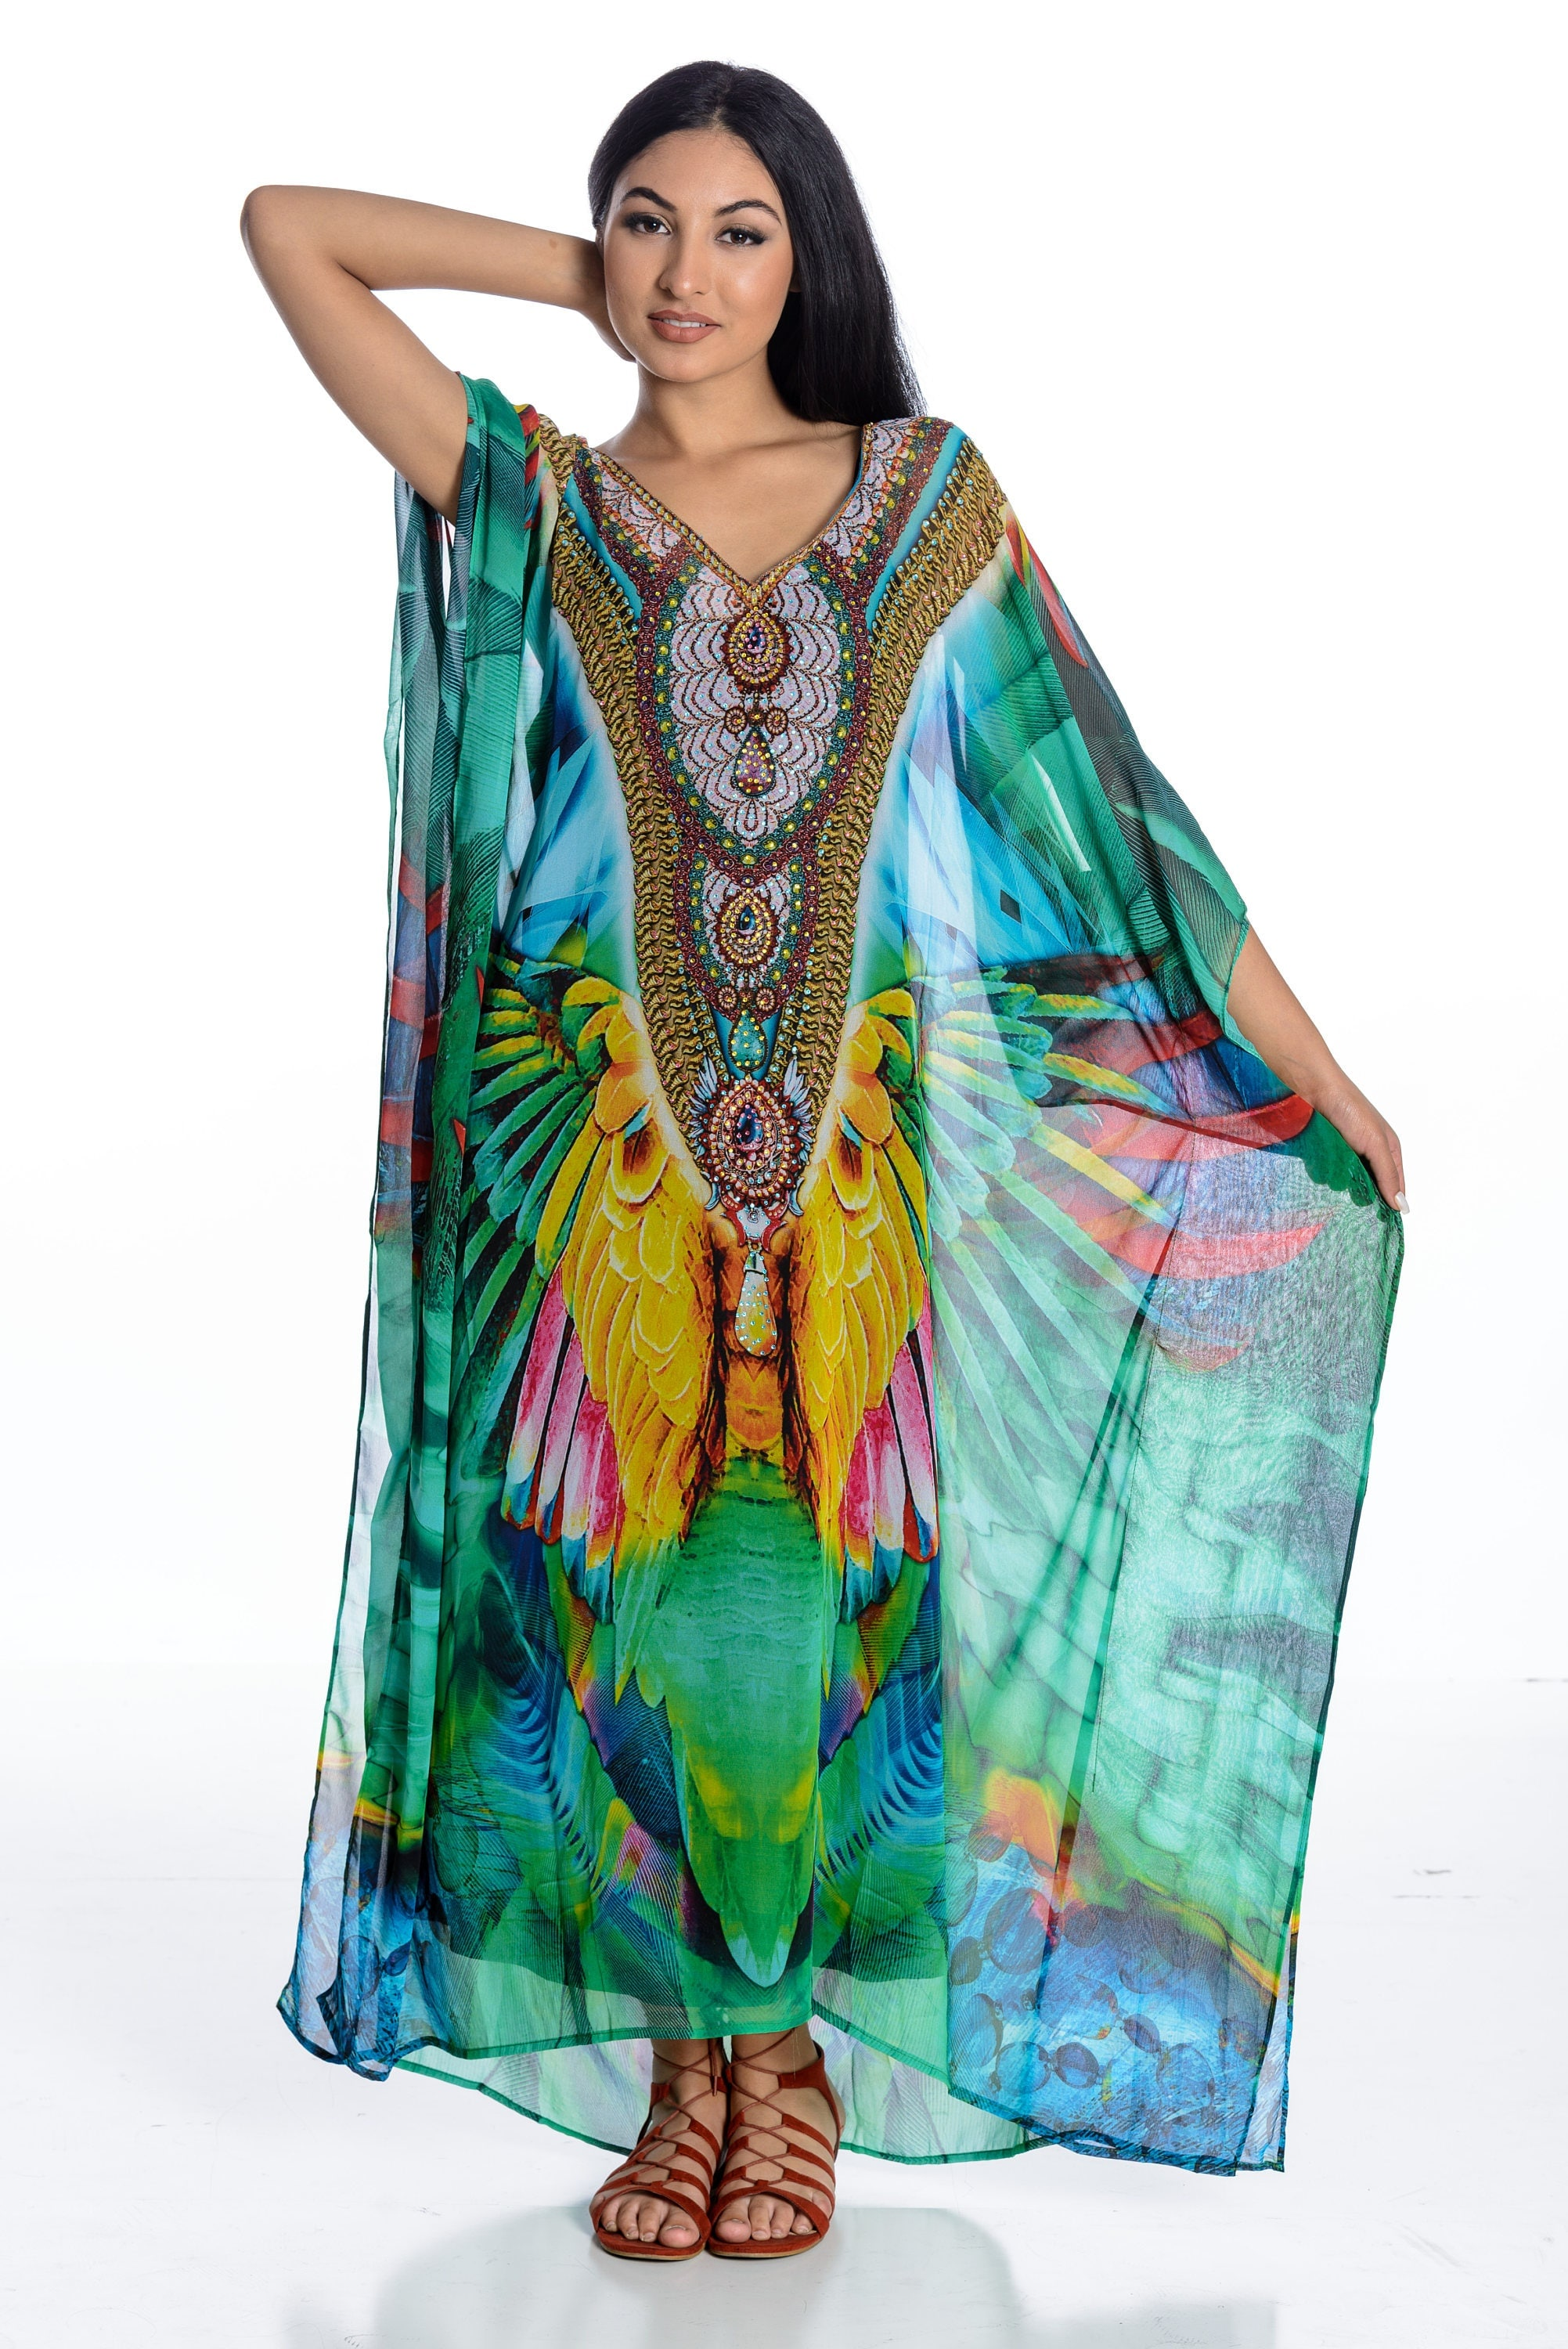 moroccan kaftan kaftan dress cotton kaftan beach kaftan caftan kaftan men kaftan maxi dress abaya silk kaftan dubai kaftan kimono maxi dress Footer Get fresh Etsy trends and unique gift ideas delivered right to .